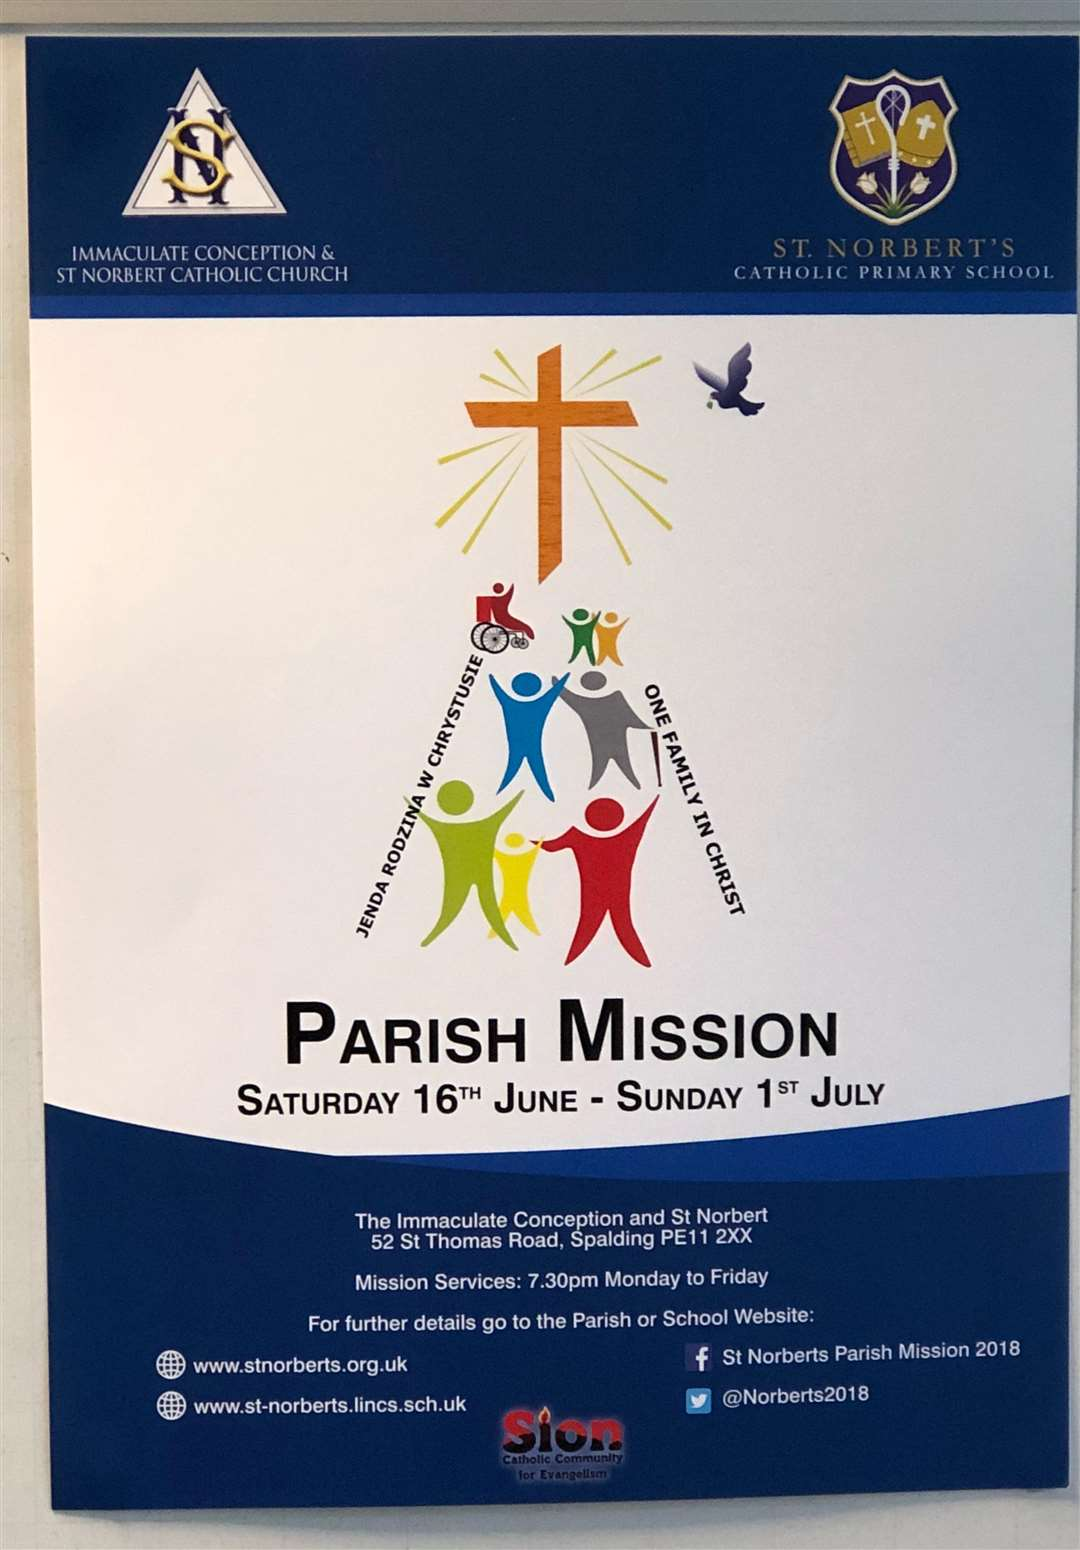 The Catholic Mission 2018 poster. (2387966)